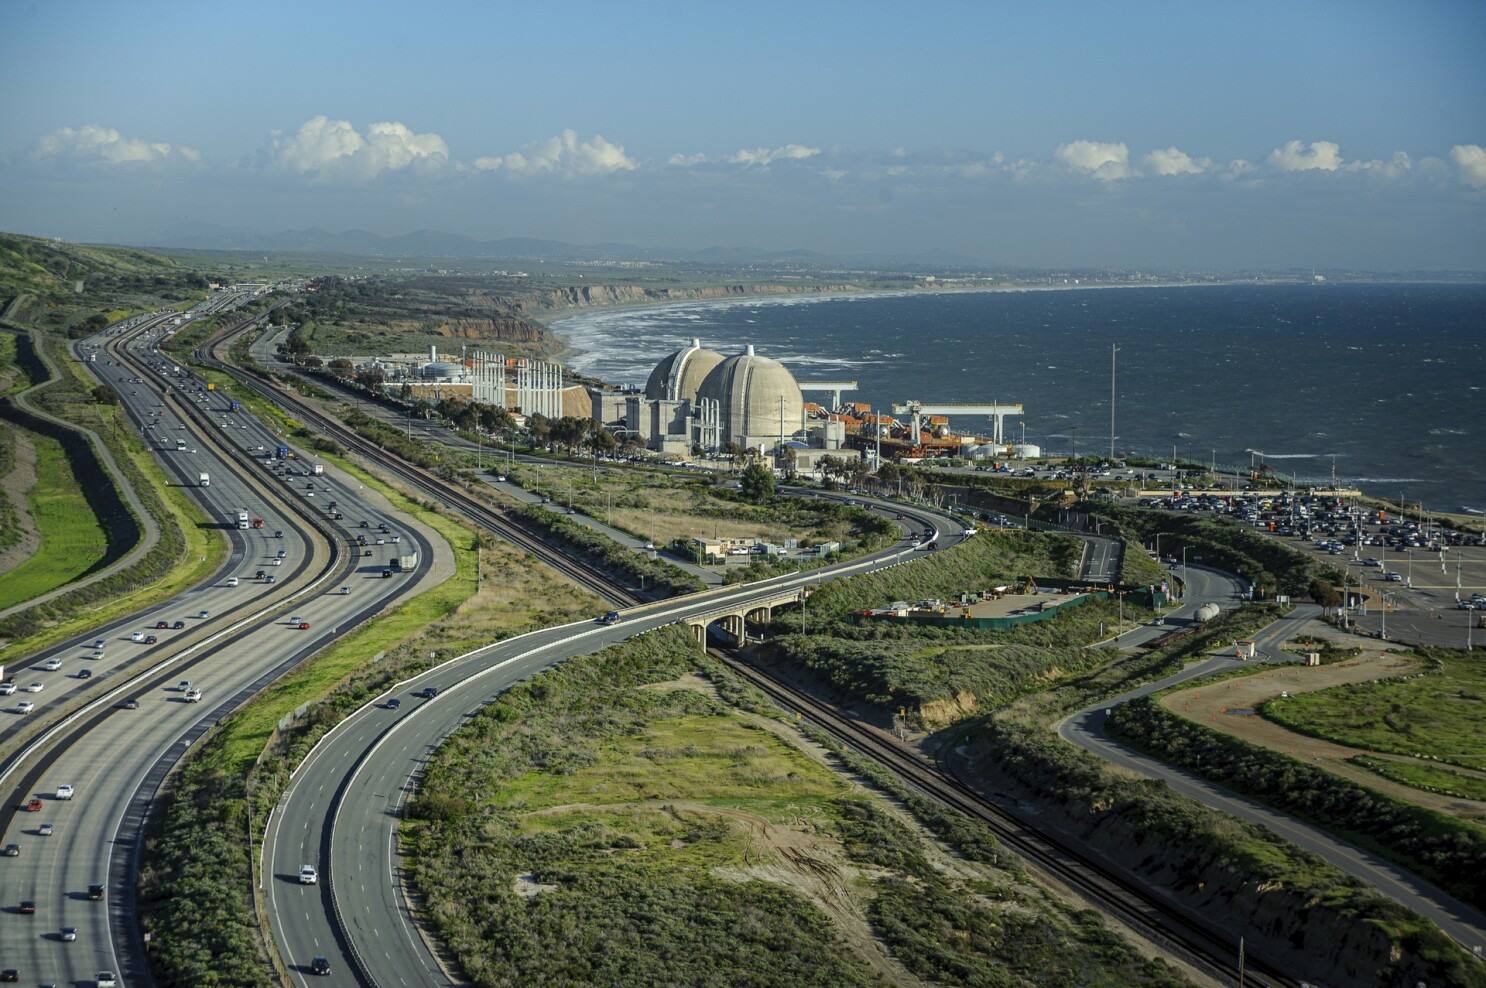 The 8-year project to dismantle the San Onofre nuclear plant is about to begin